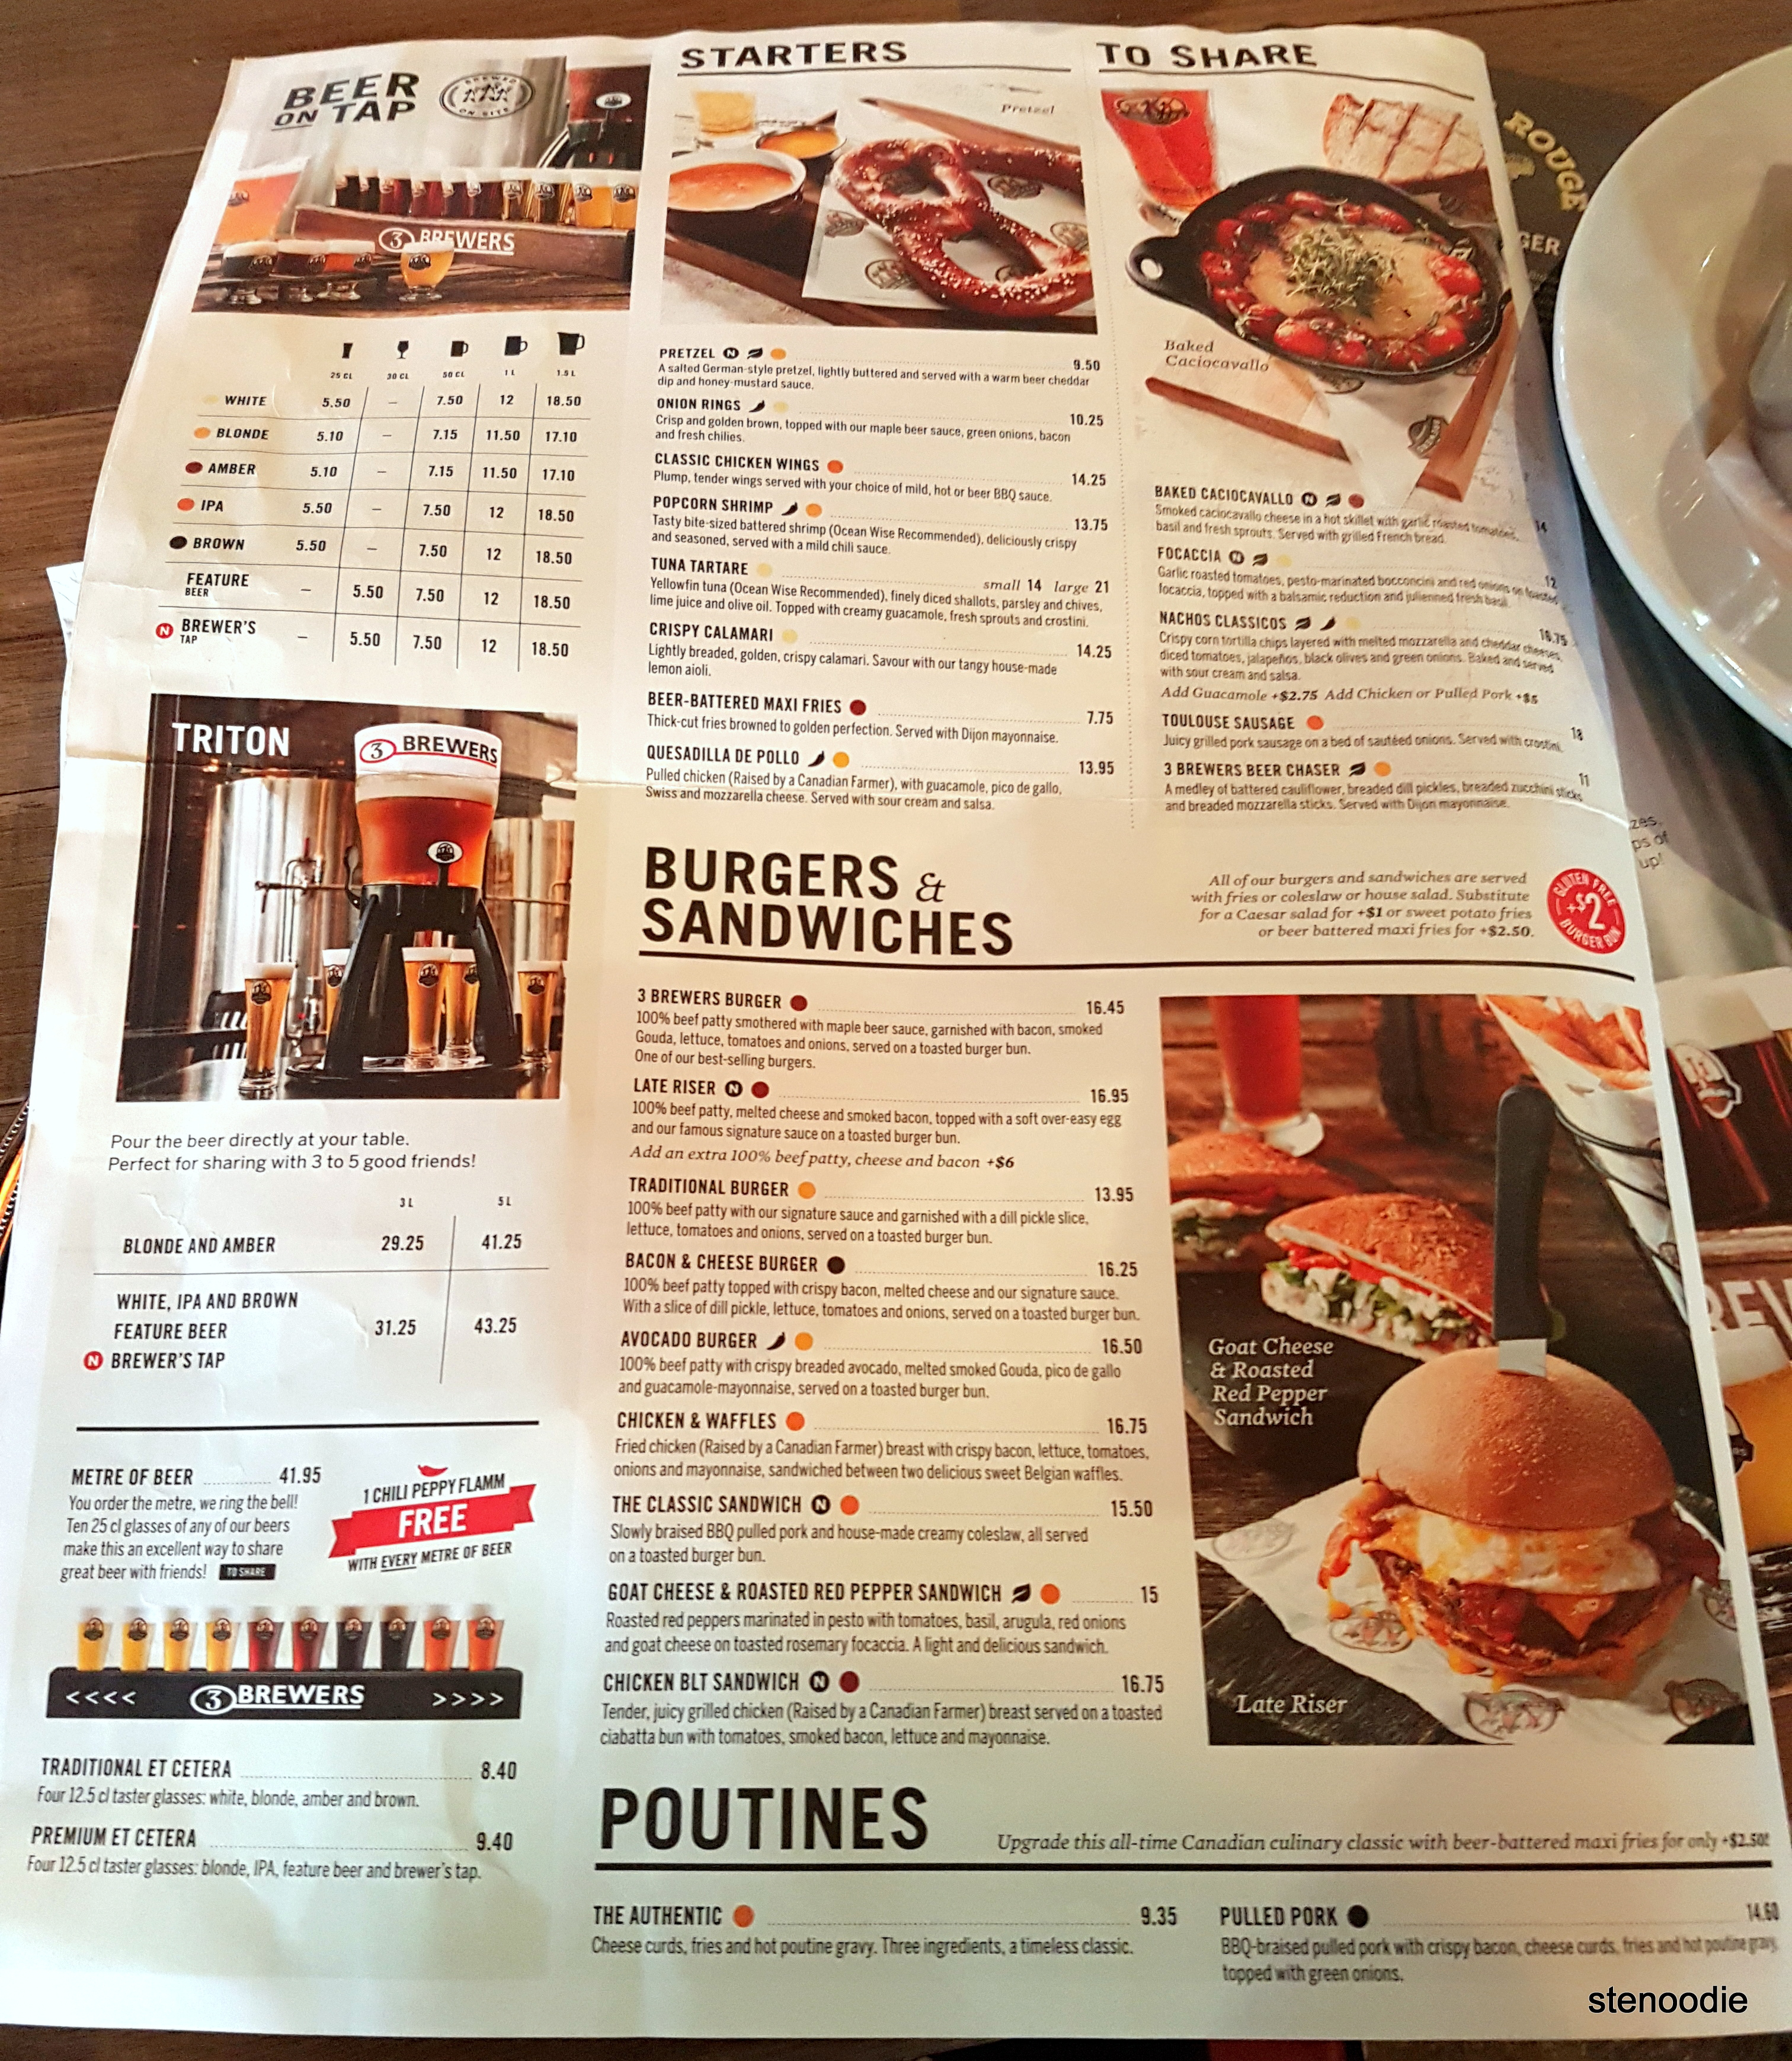 The 3 Brewers Richmond Hill menu and prices